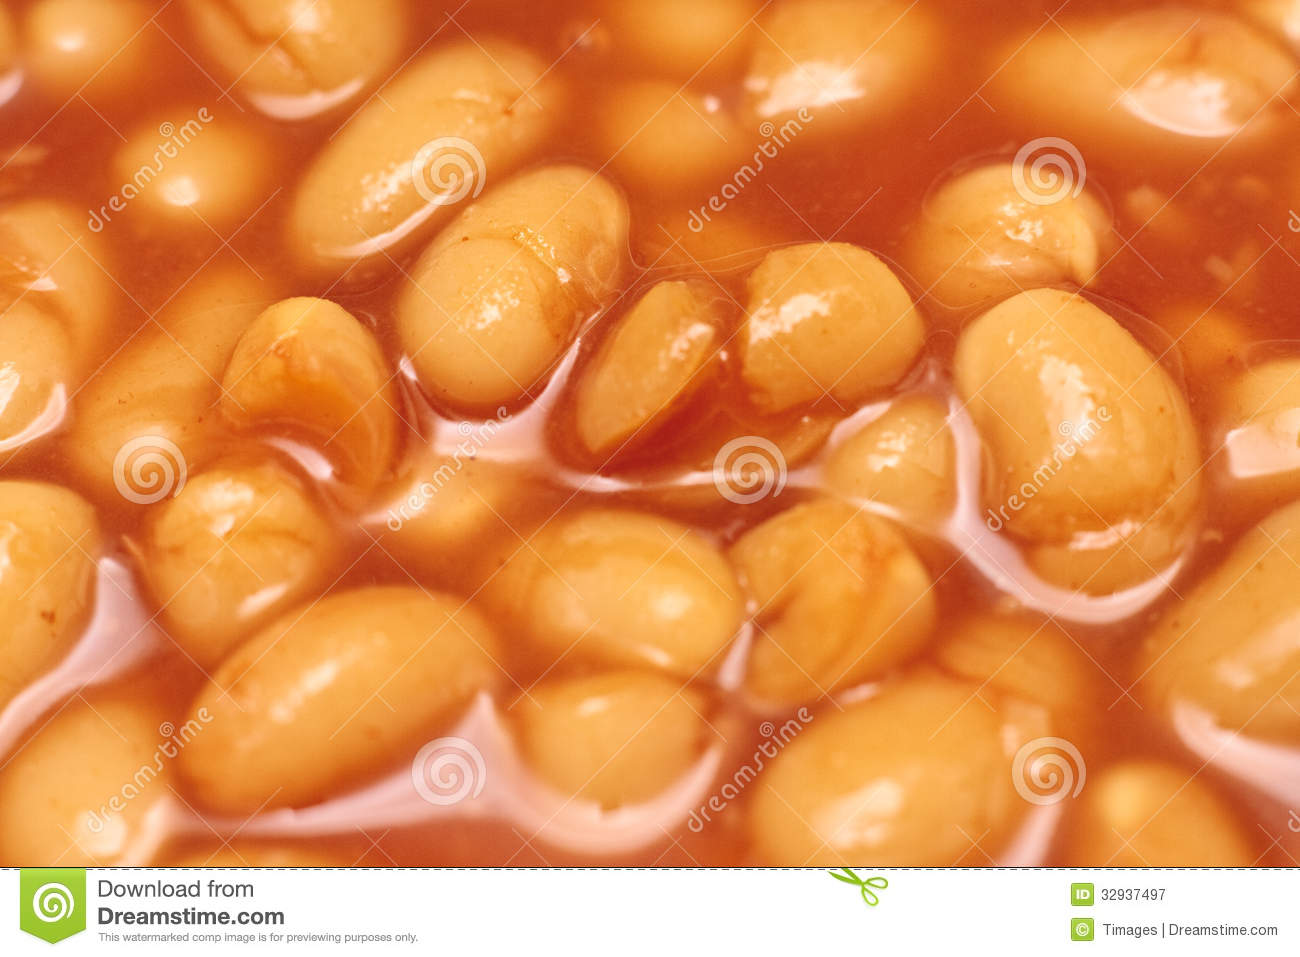 close-up of baked beans in a tomato sauce.